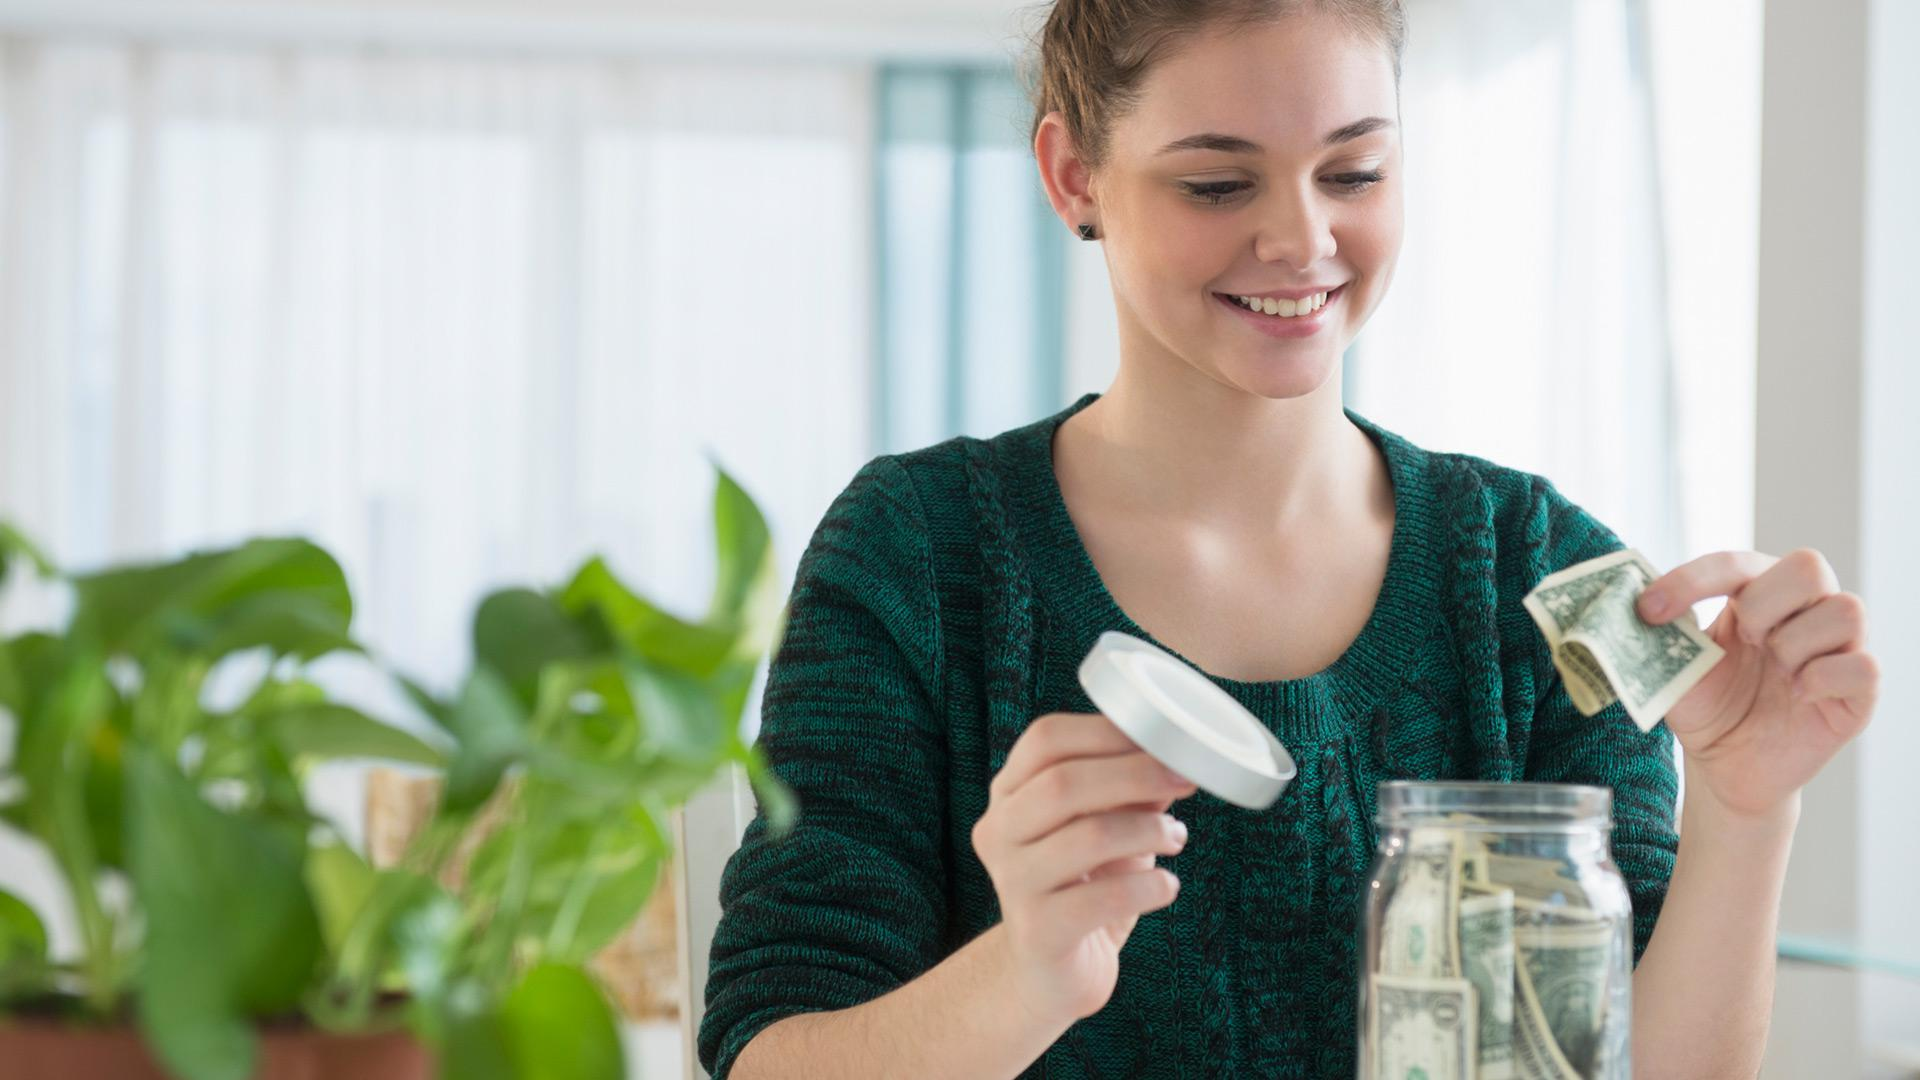 tips-for-young-adults-on-budgeting-and-saving